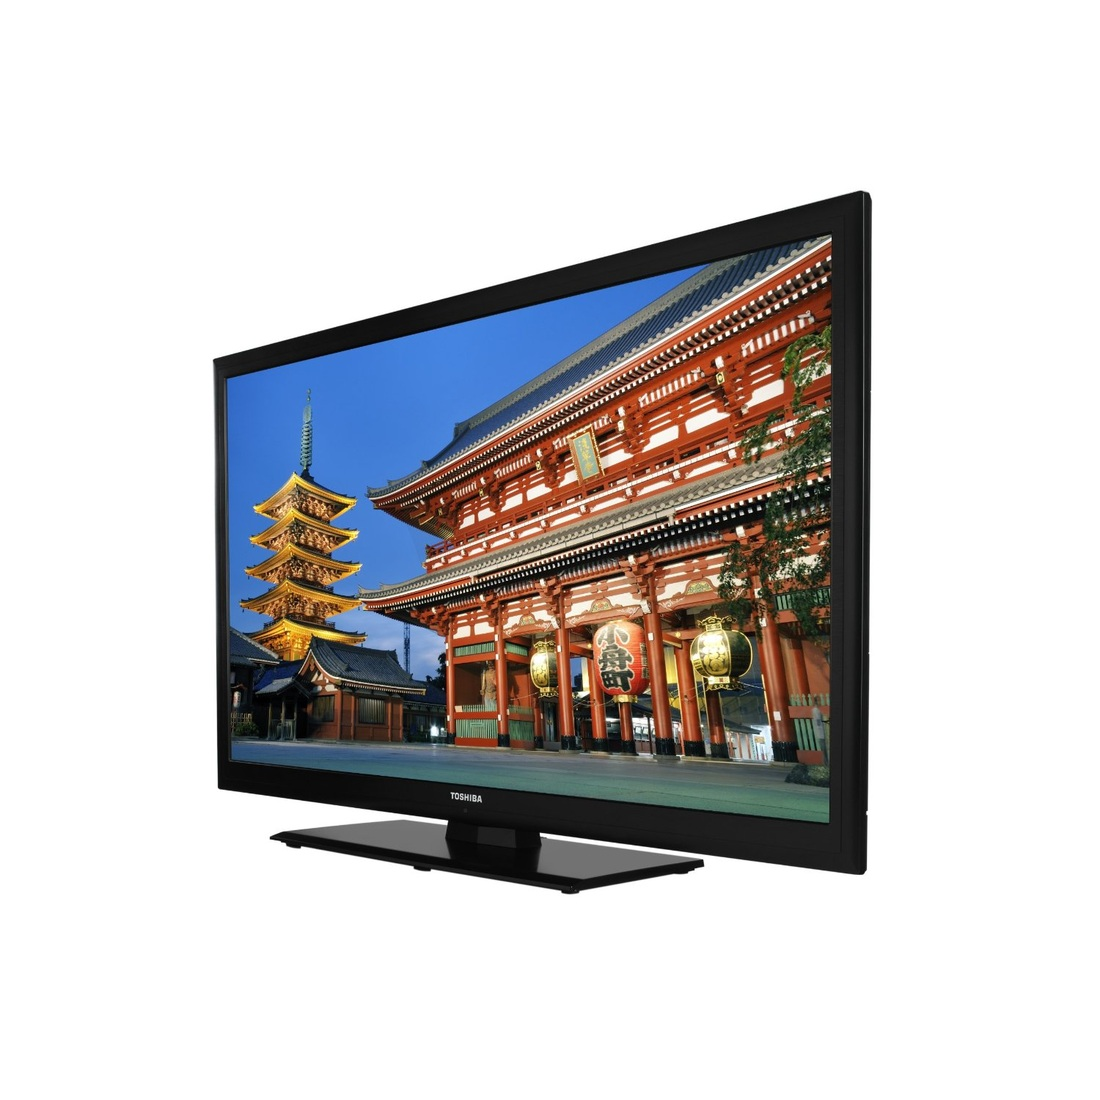 Toshiba 22bl712g Led Tv